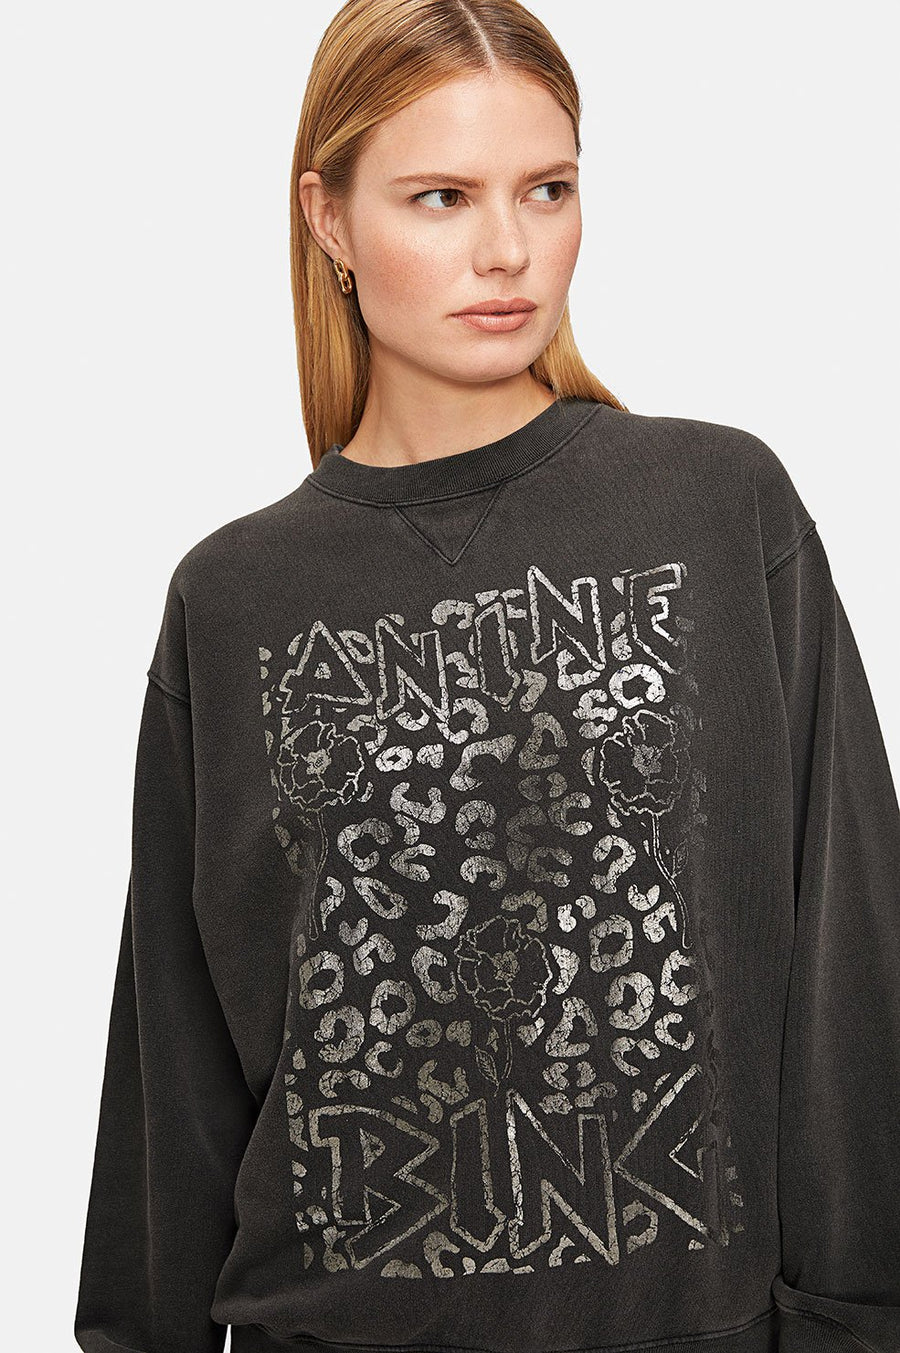 Anine Bing Ramona Panther Sweatshirt from The New Trend